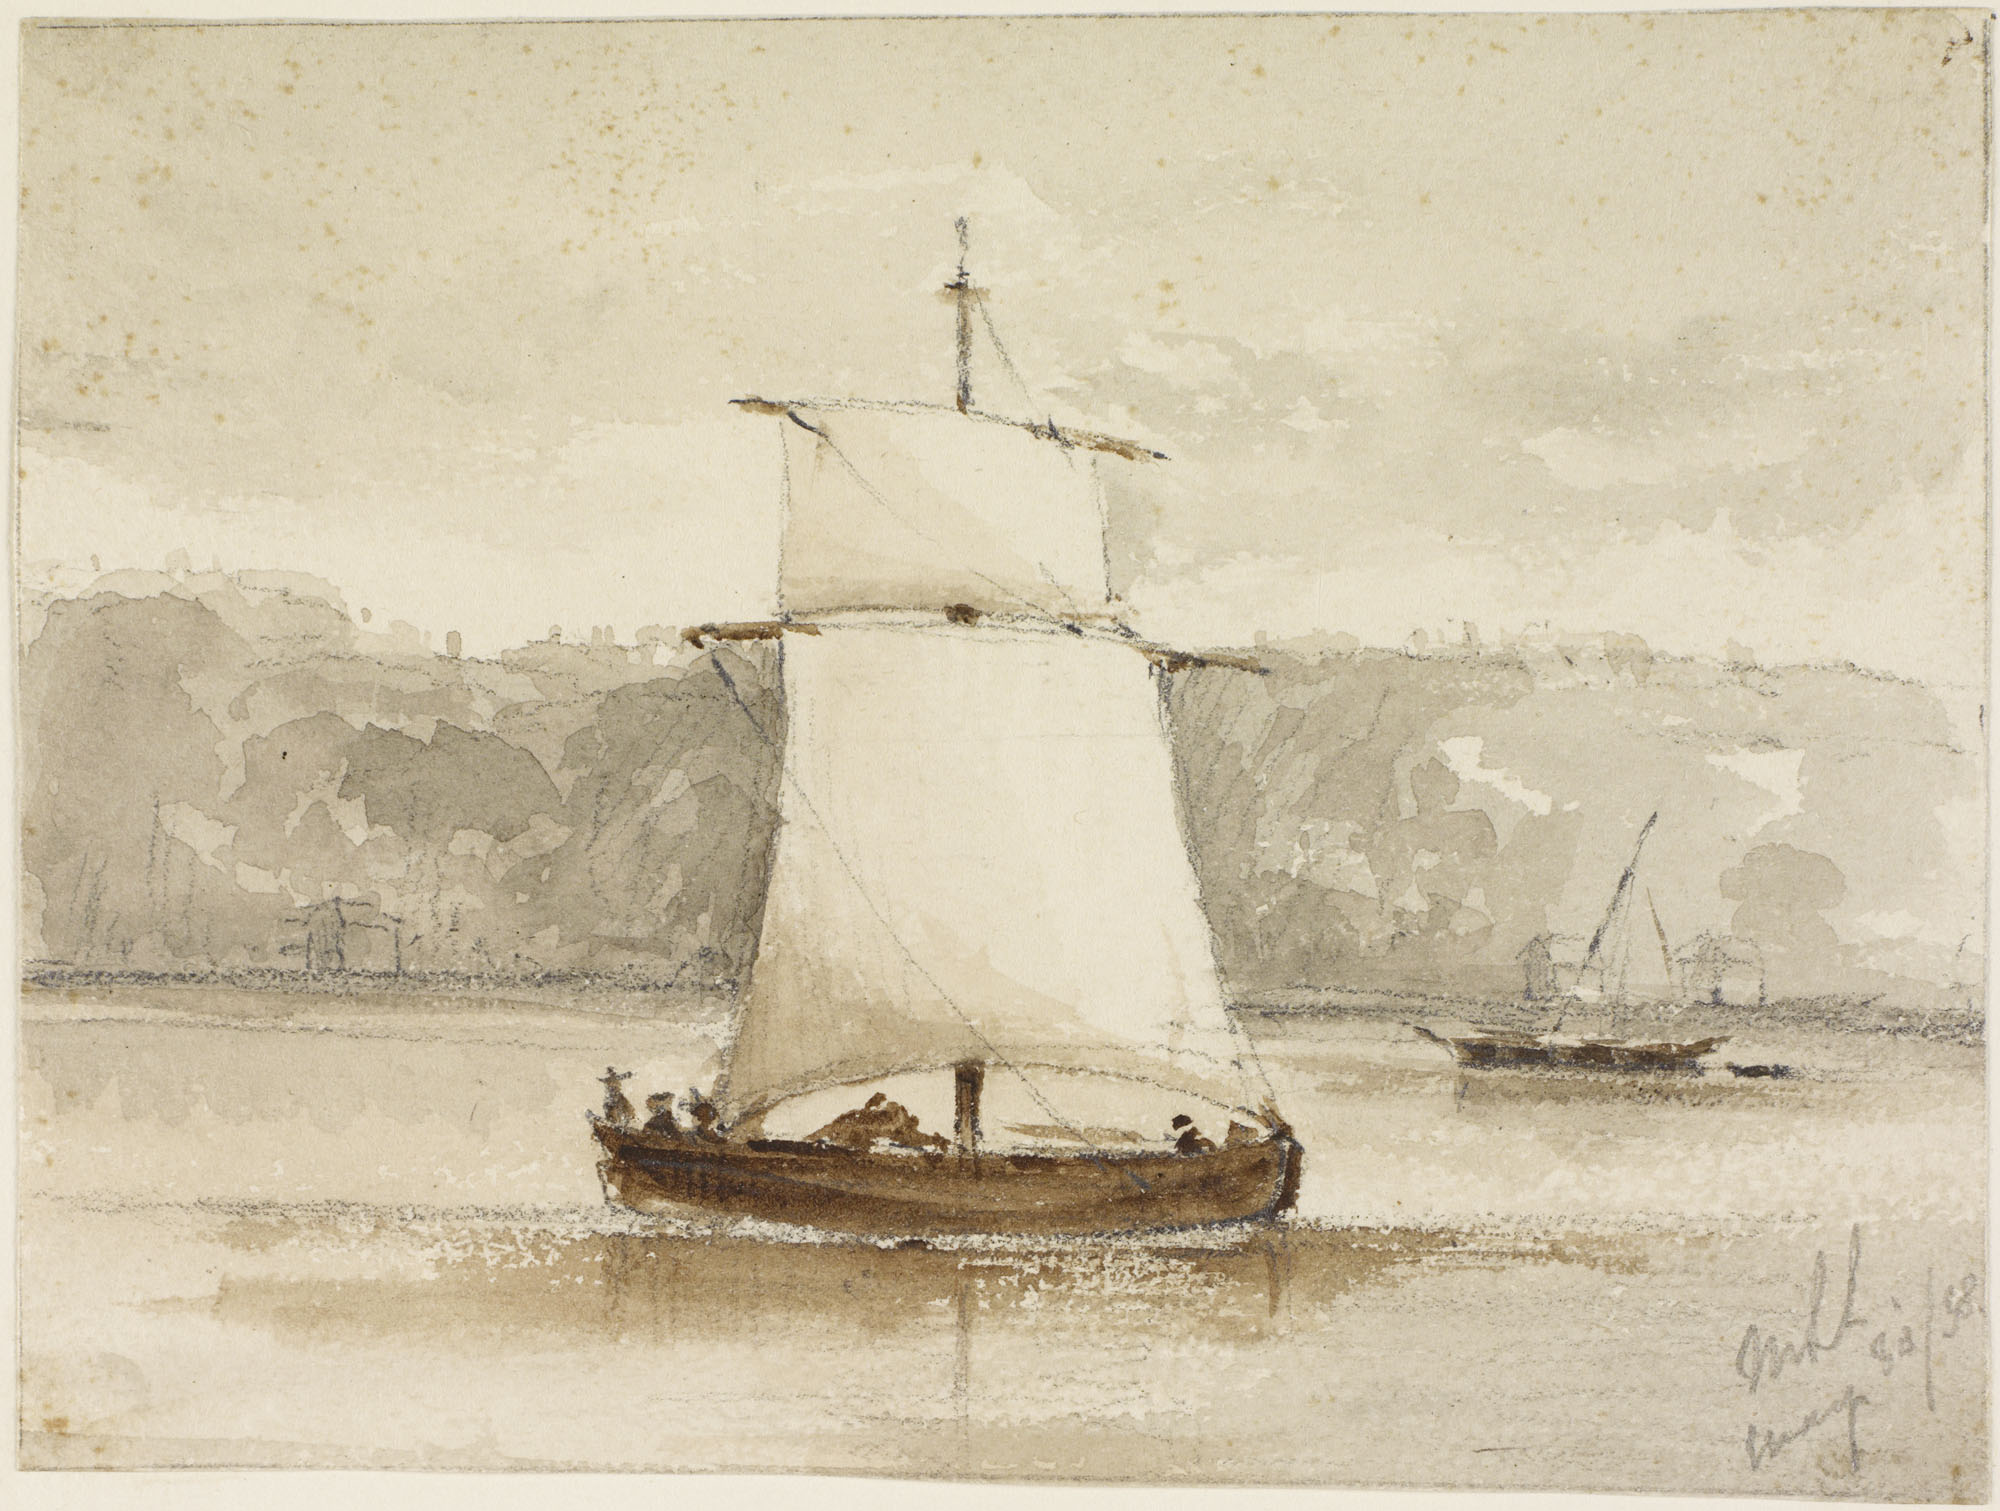 [Single-Masted Boat with Two Sails] (item 1)